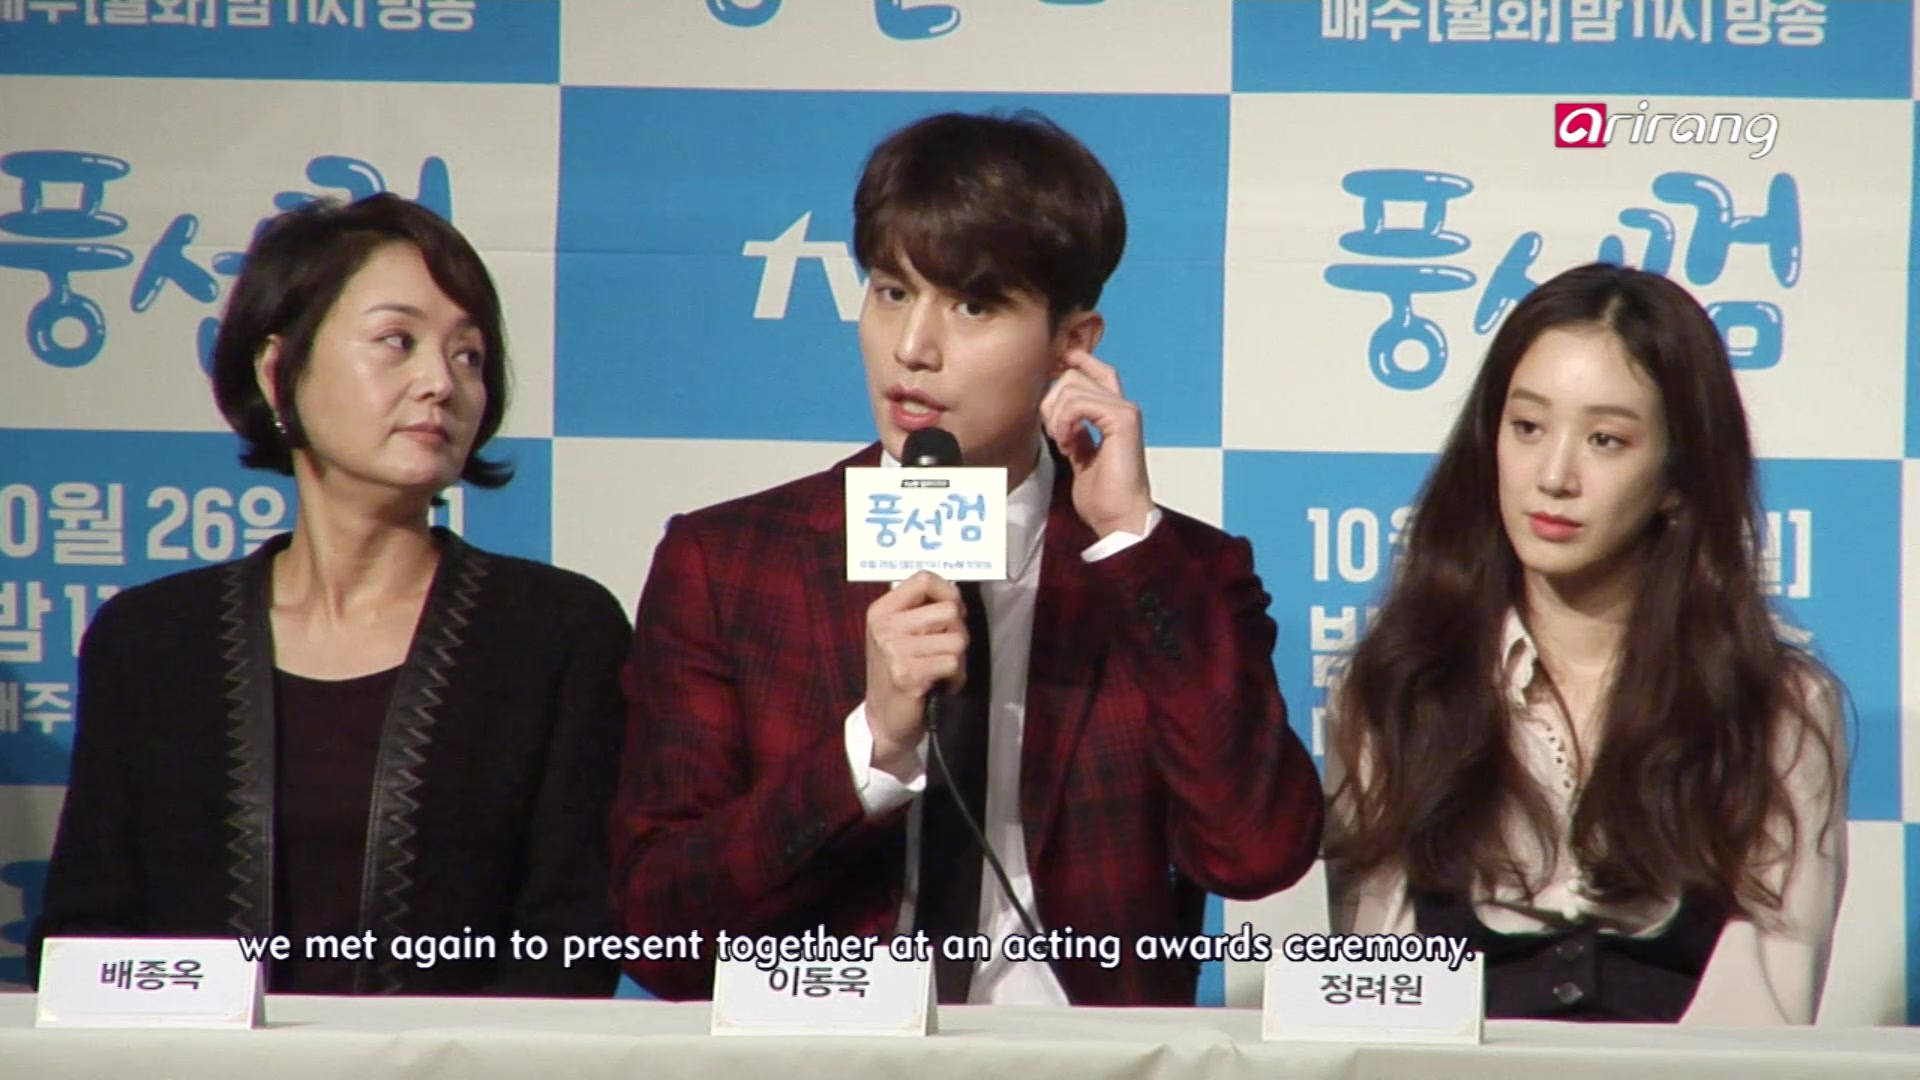 Jung Ryeo Won & Lee Dong Wook's 'Bubblegum' Press Conference